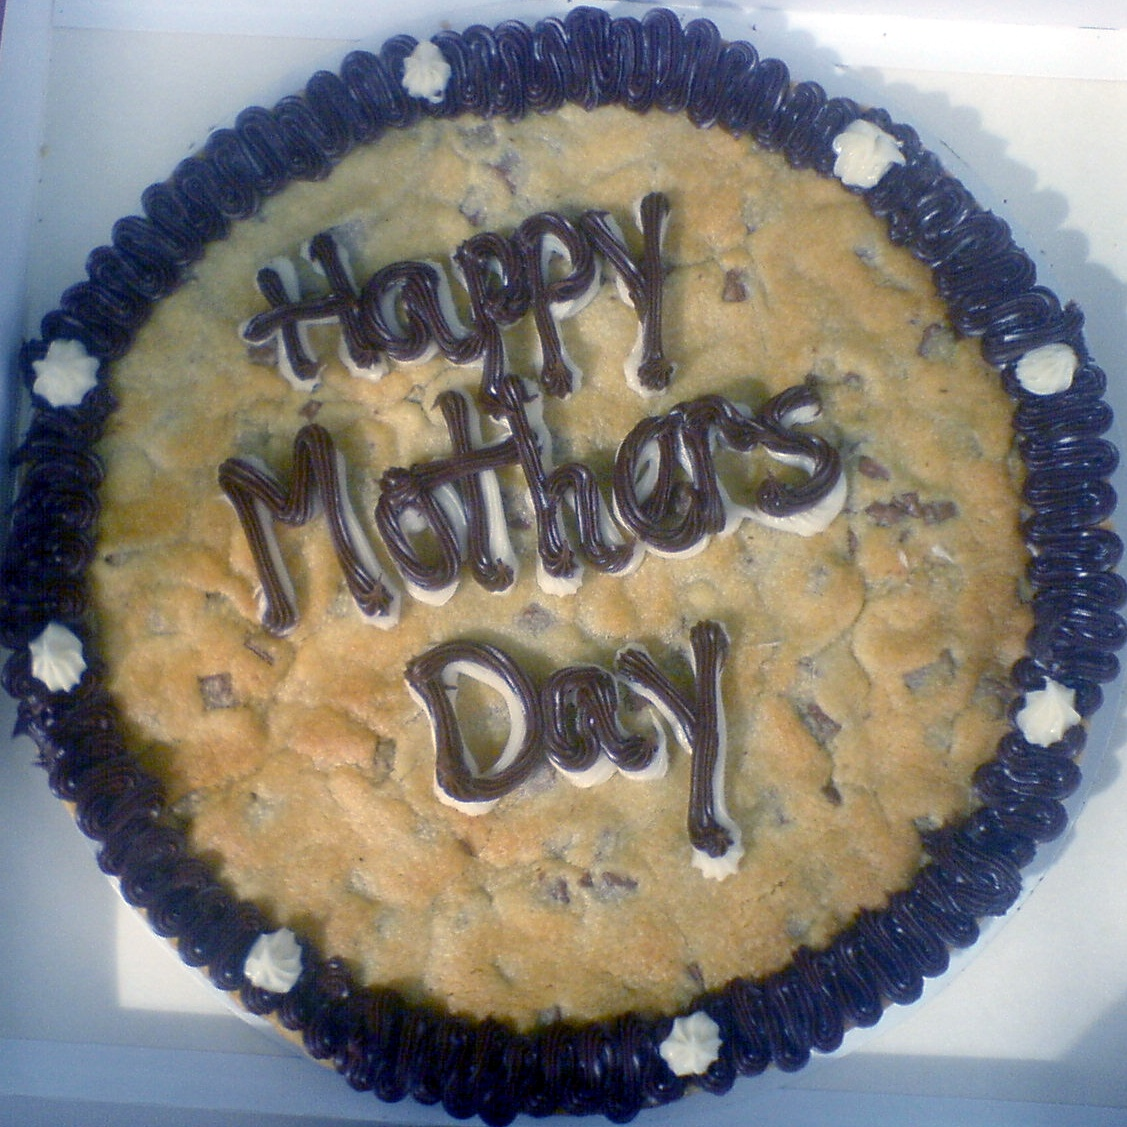 http://upload.wikimedia.org/wikipedia/commons/4/44/Mother%27s_Day_cake.jpg